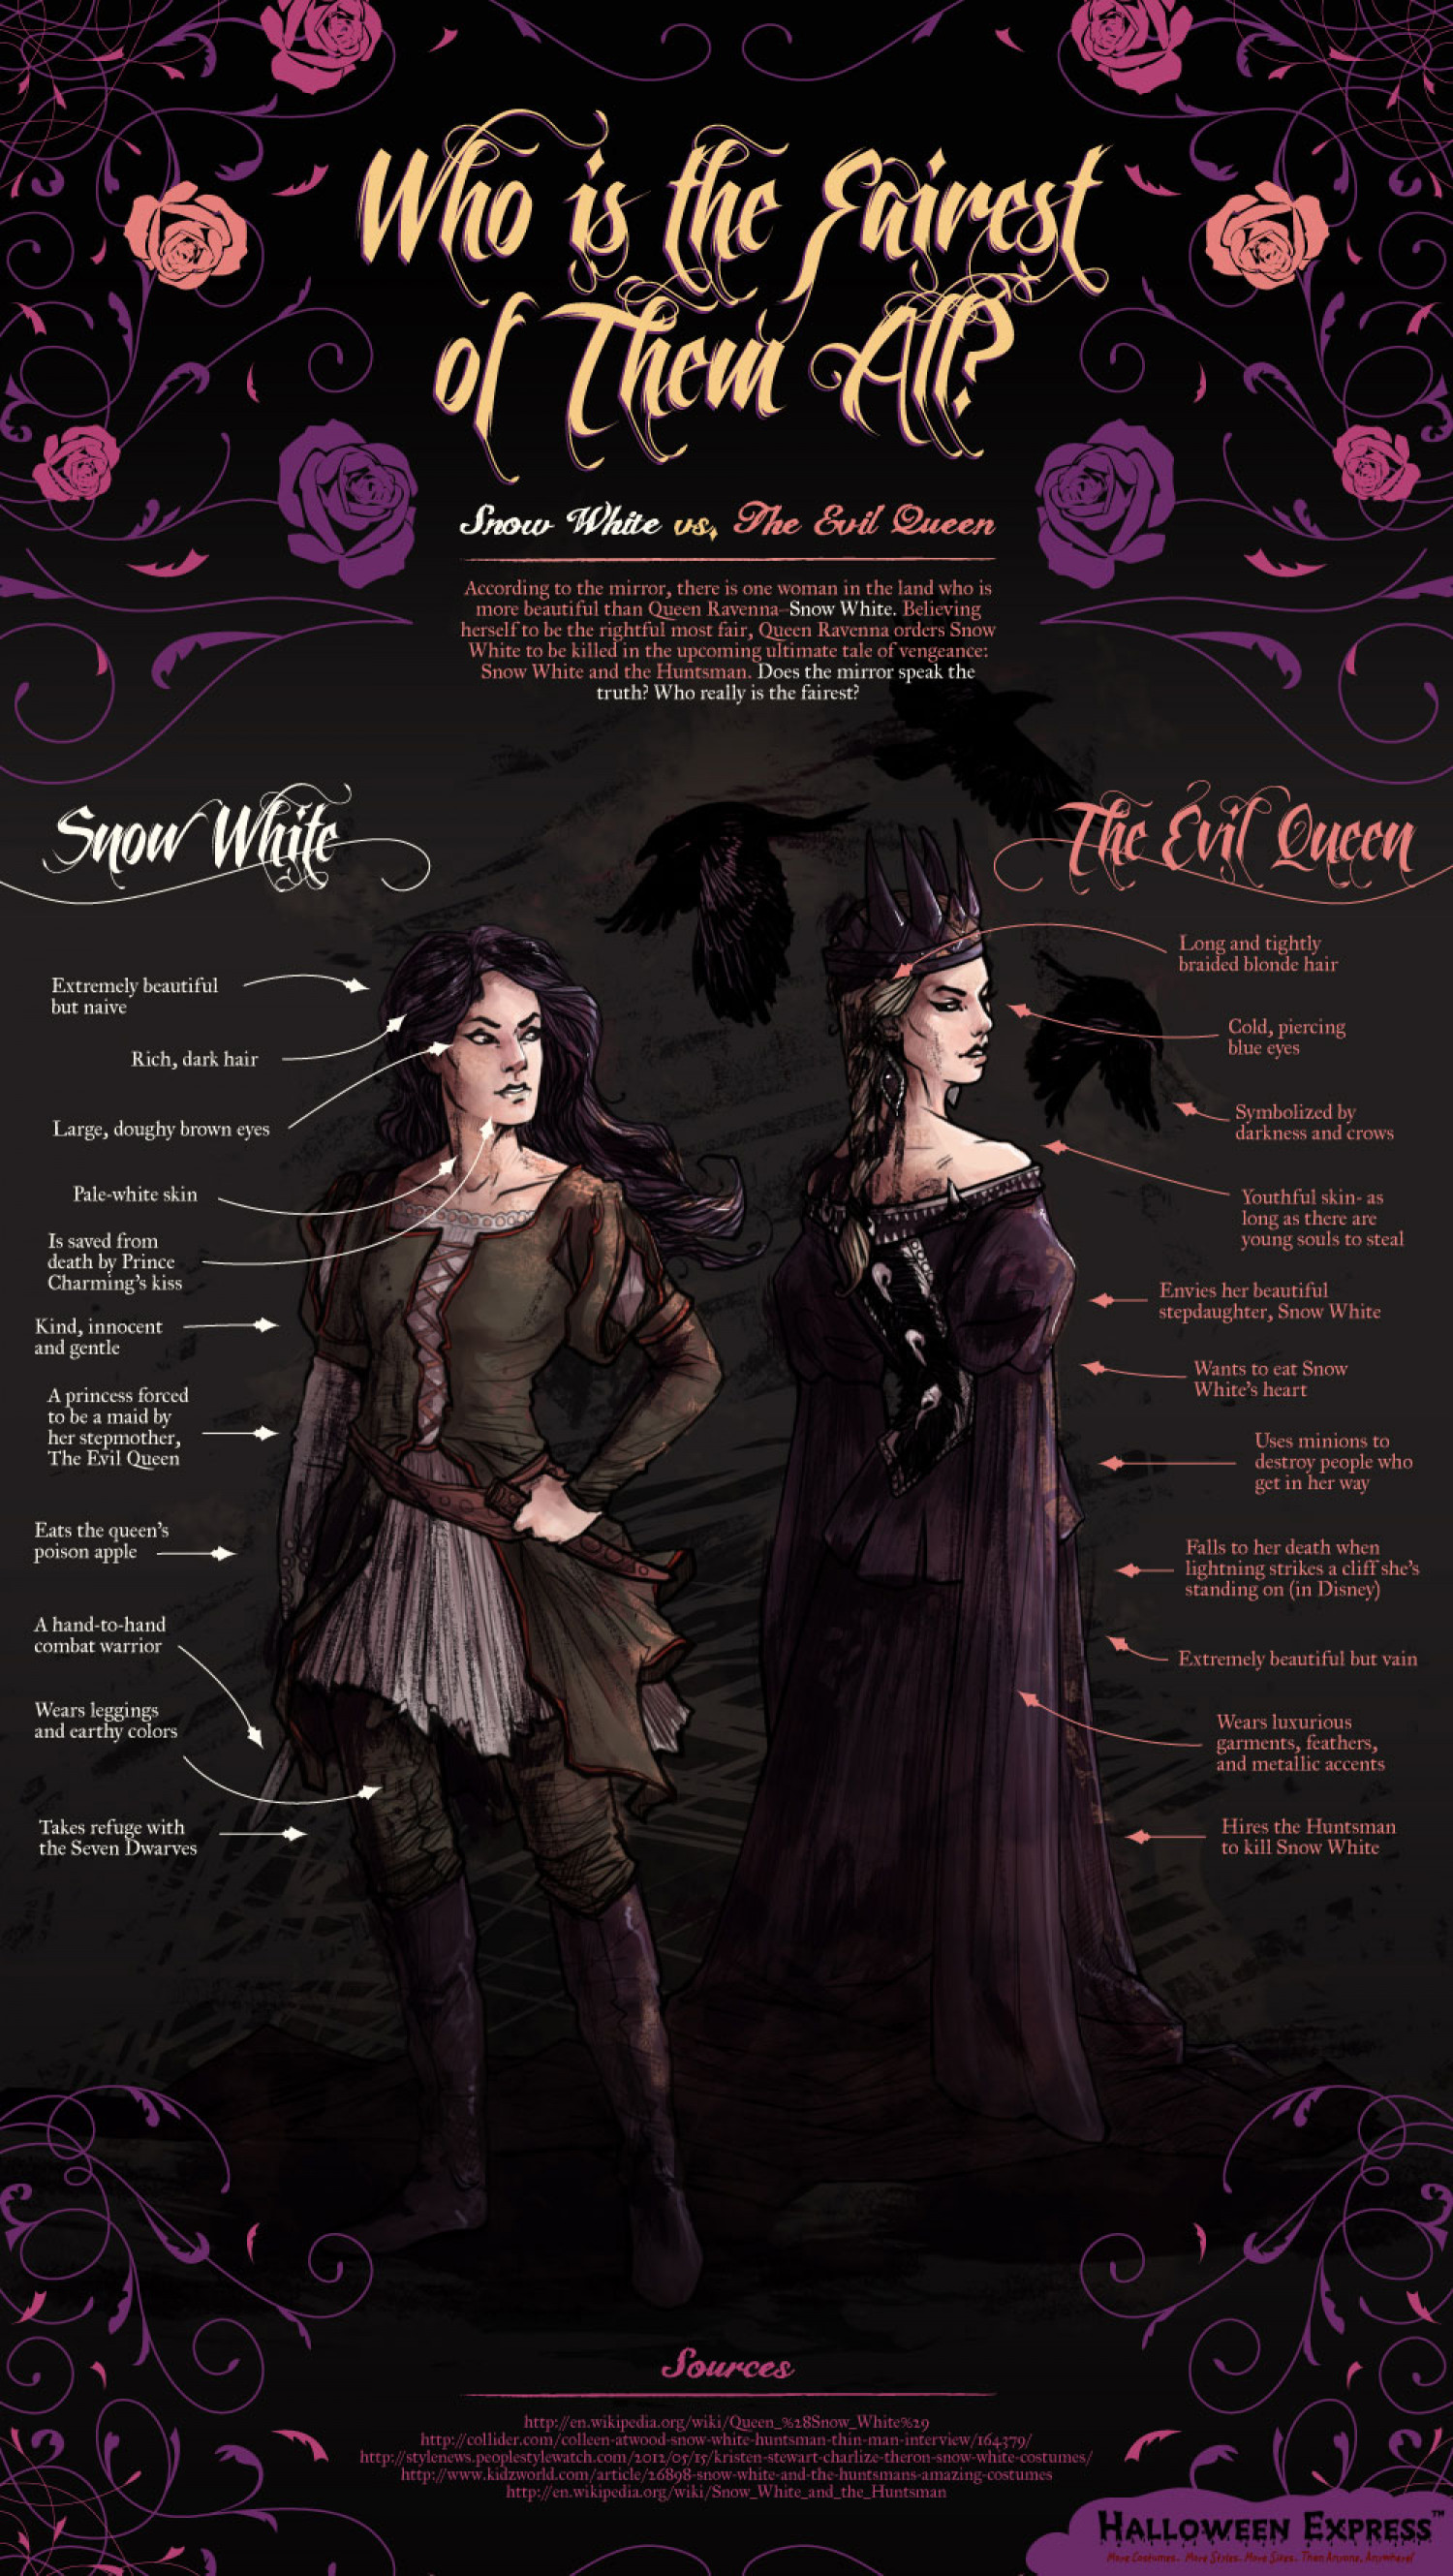 Snow White vs The Evil Queen Infographic